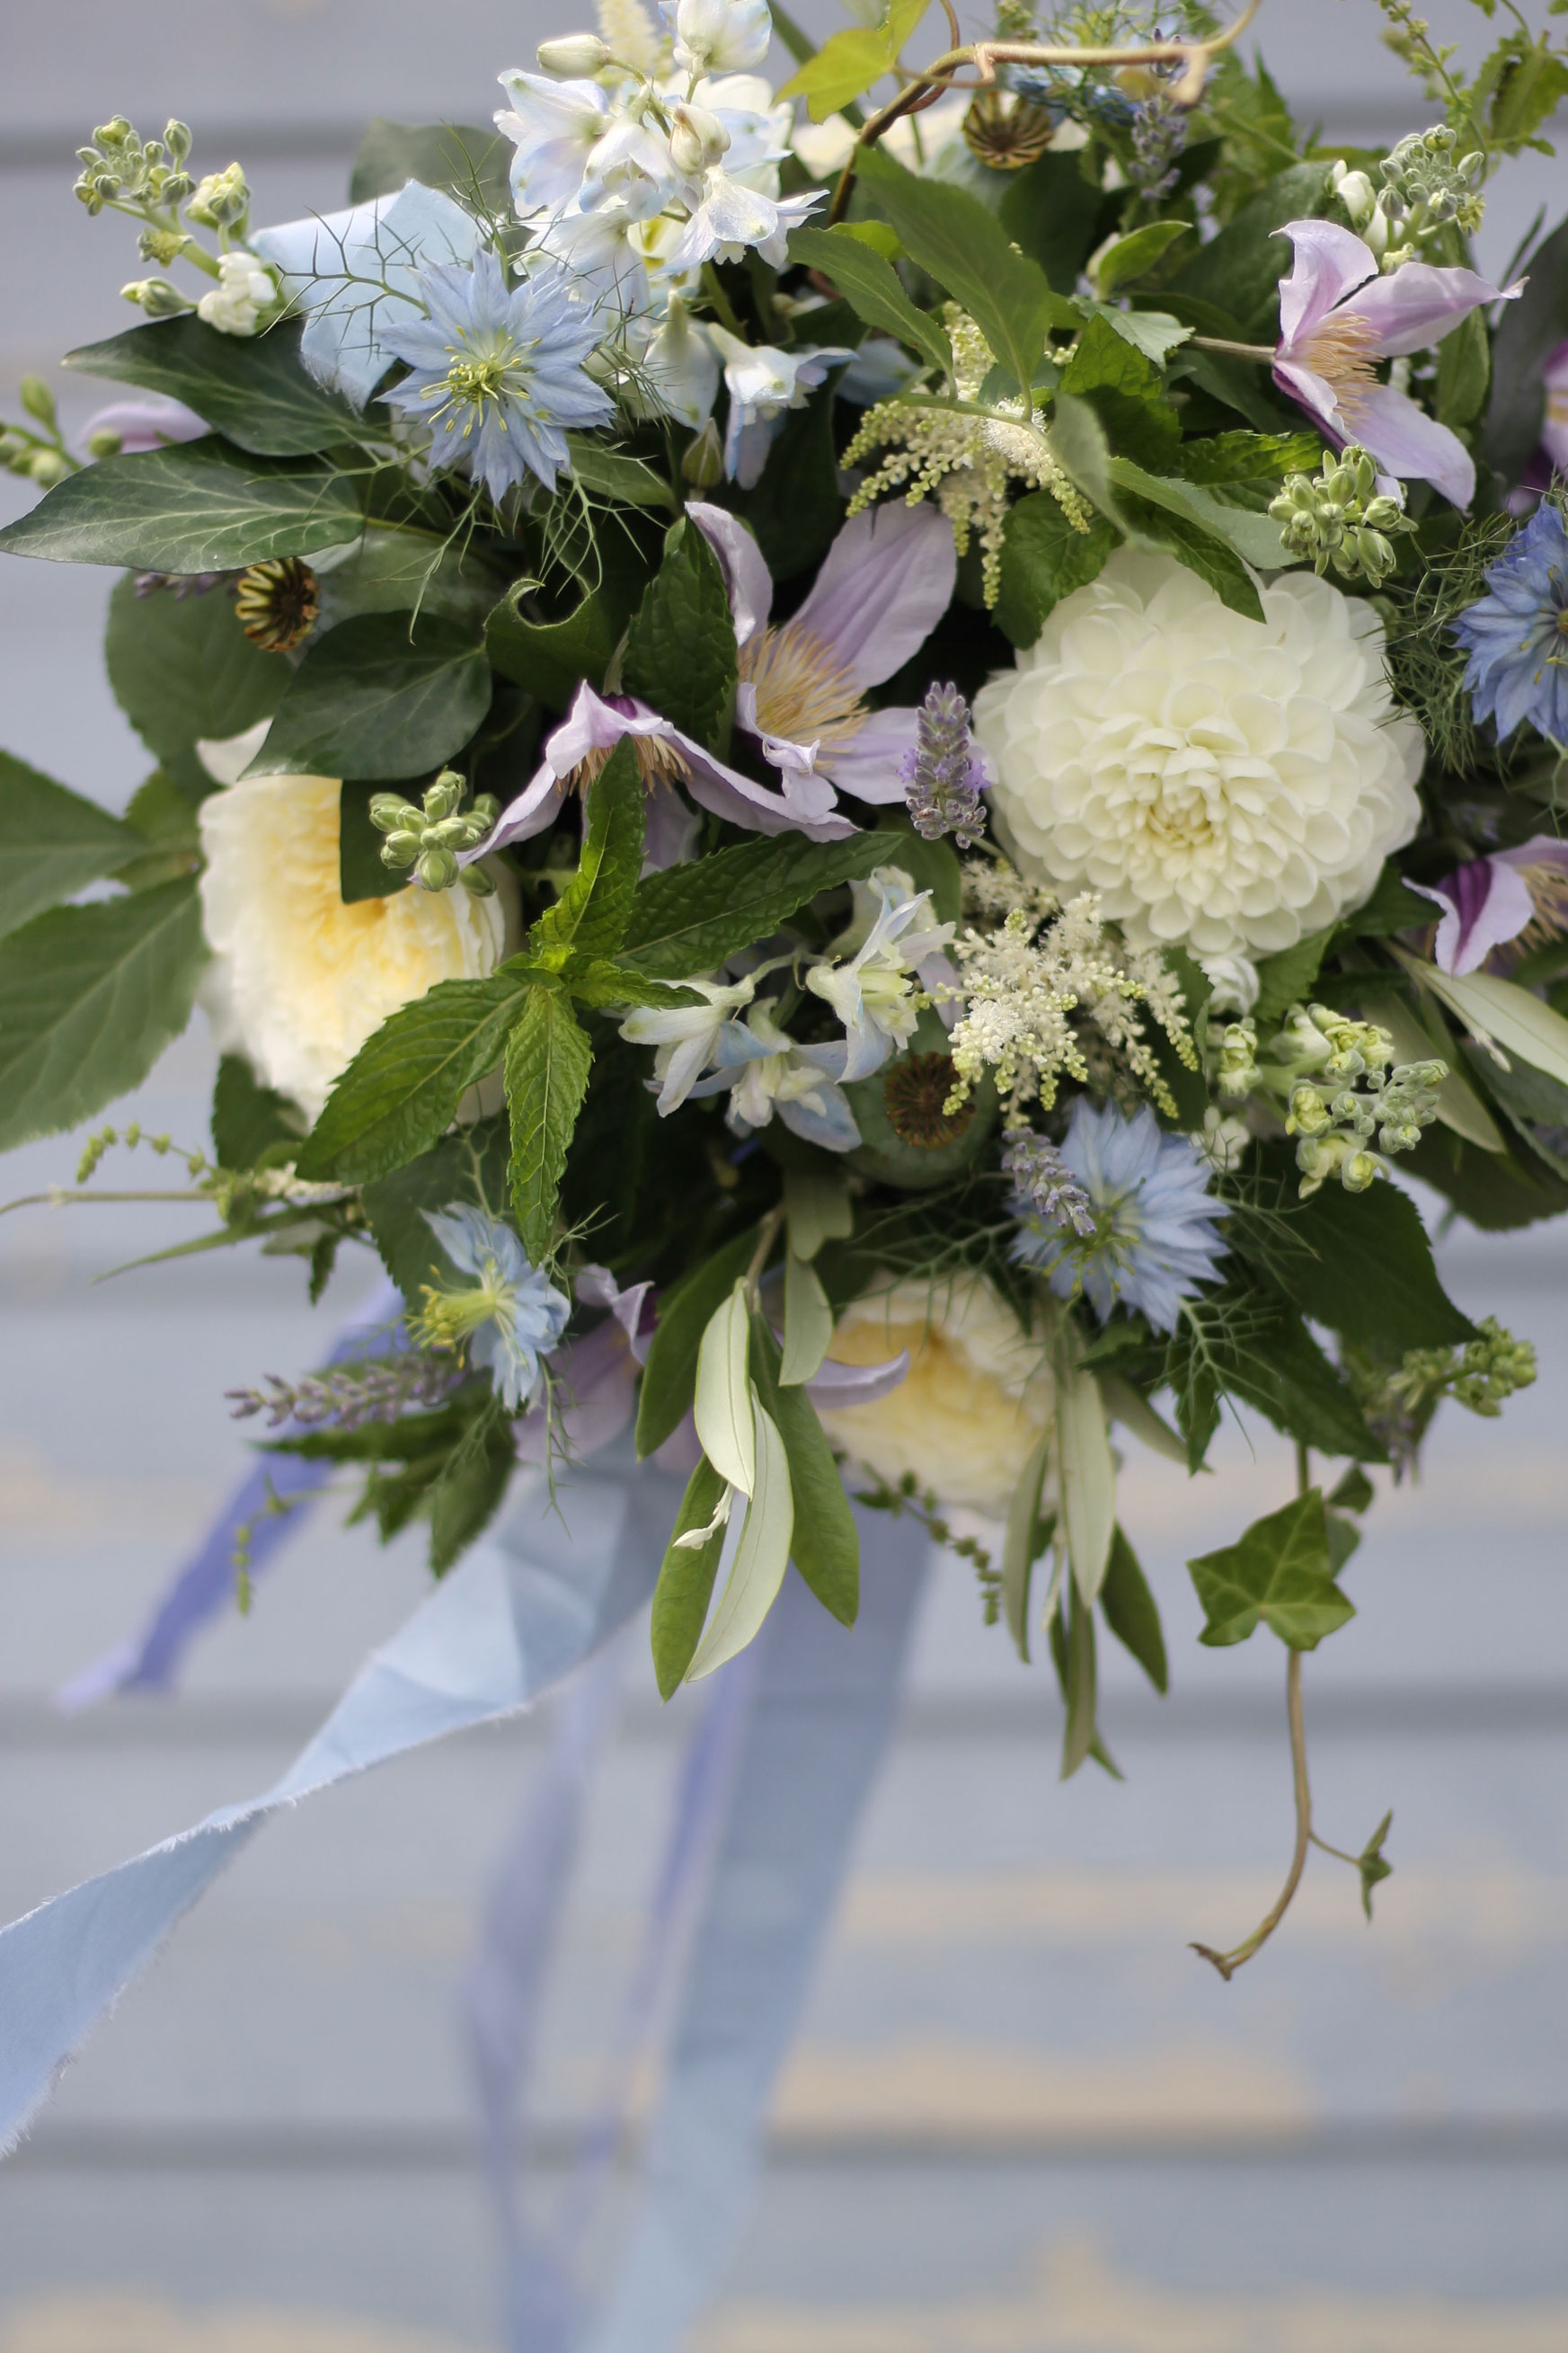 sarah-harper-floral-design-luxury-wedding-florist-flowers-oxfordshite-cotsworlds-gallery-IMG_6198